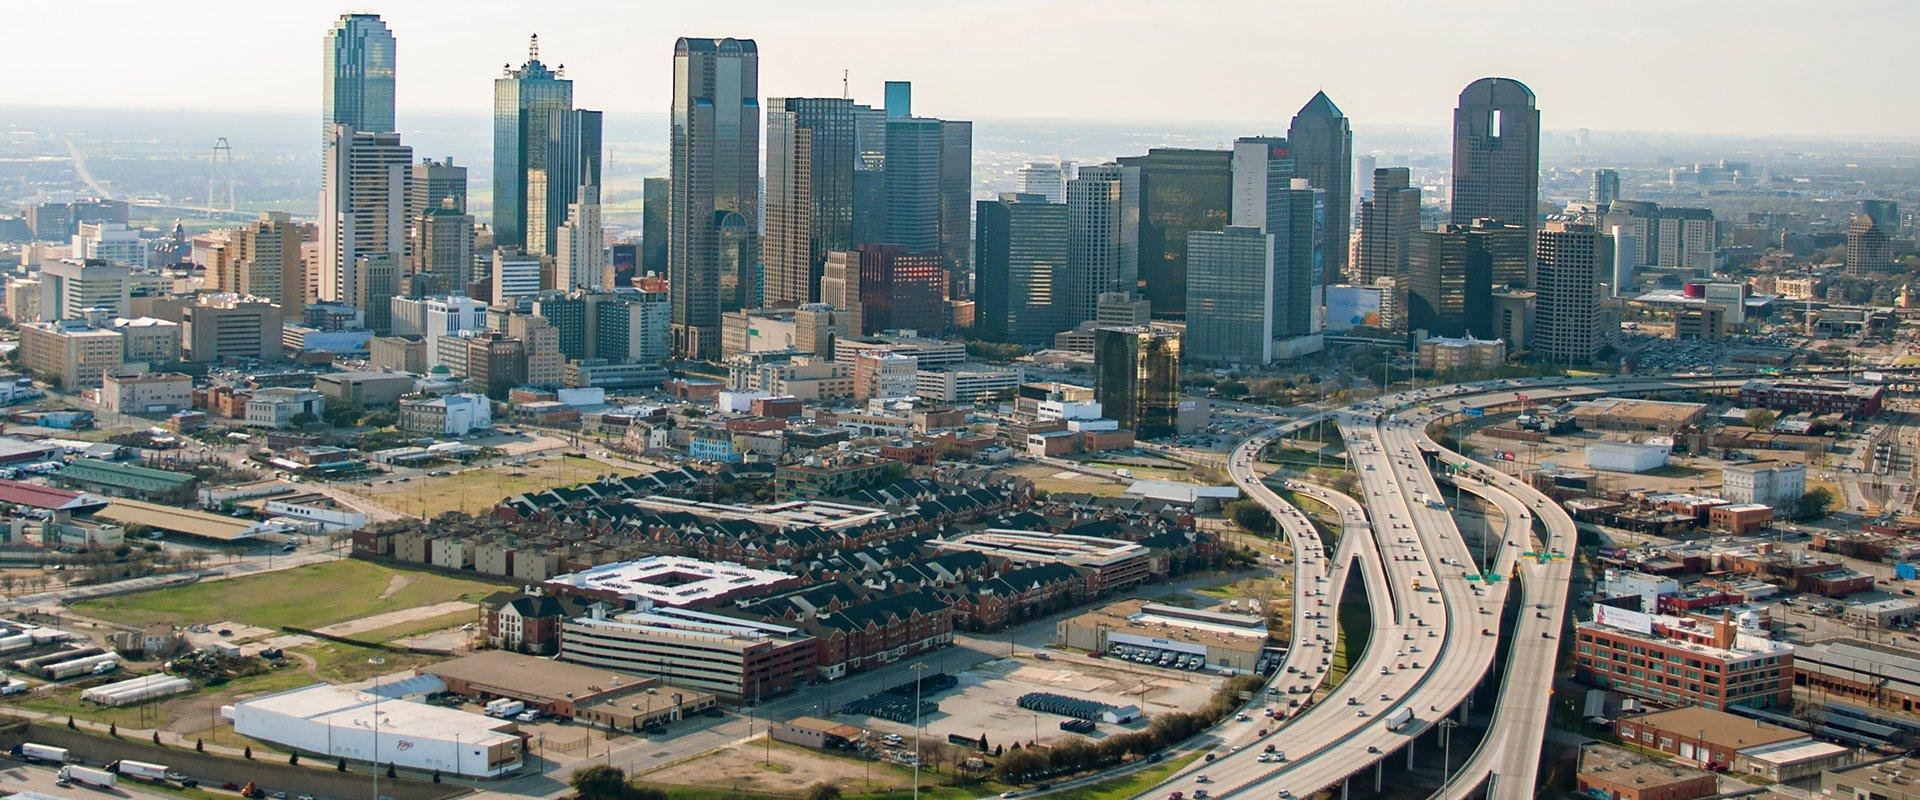 a skyline view of the dallas fort worth metroplex area